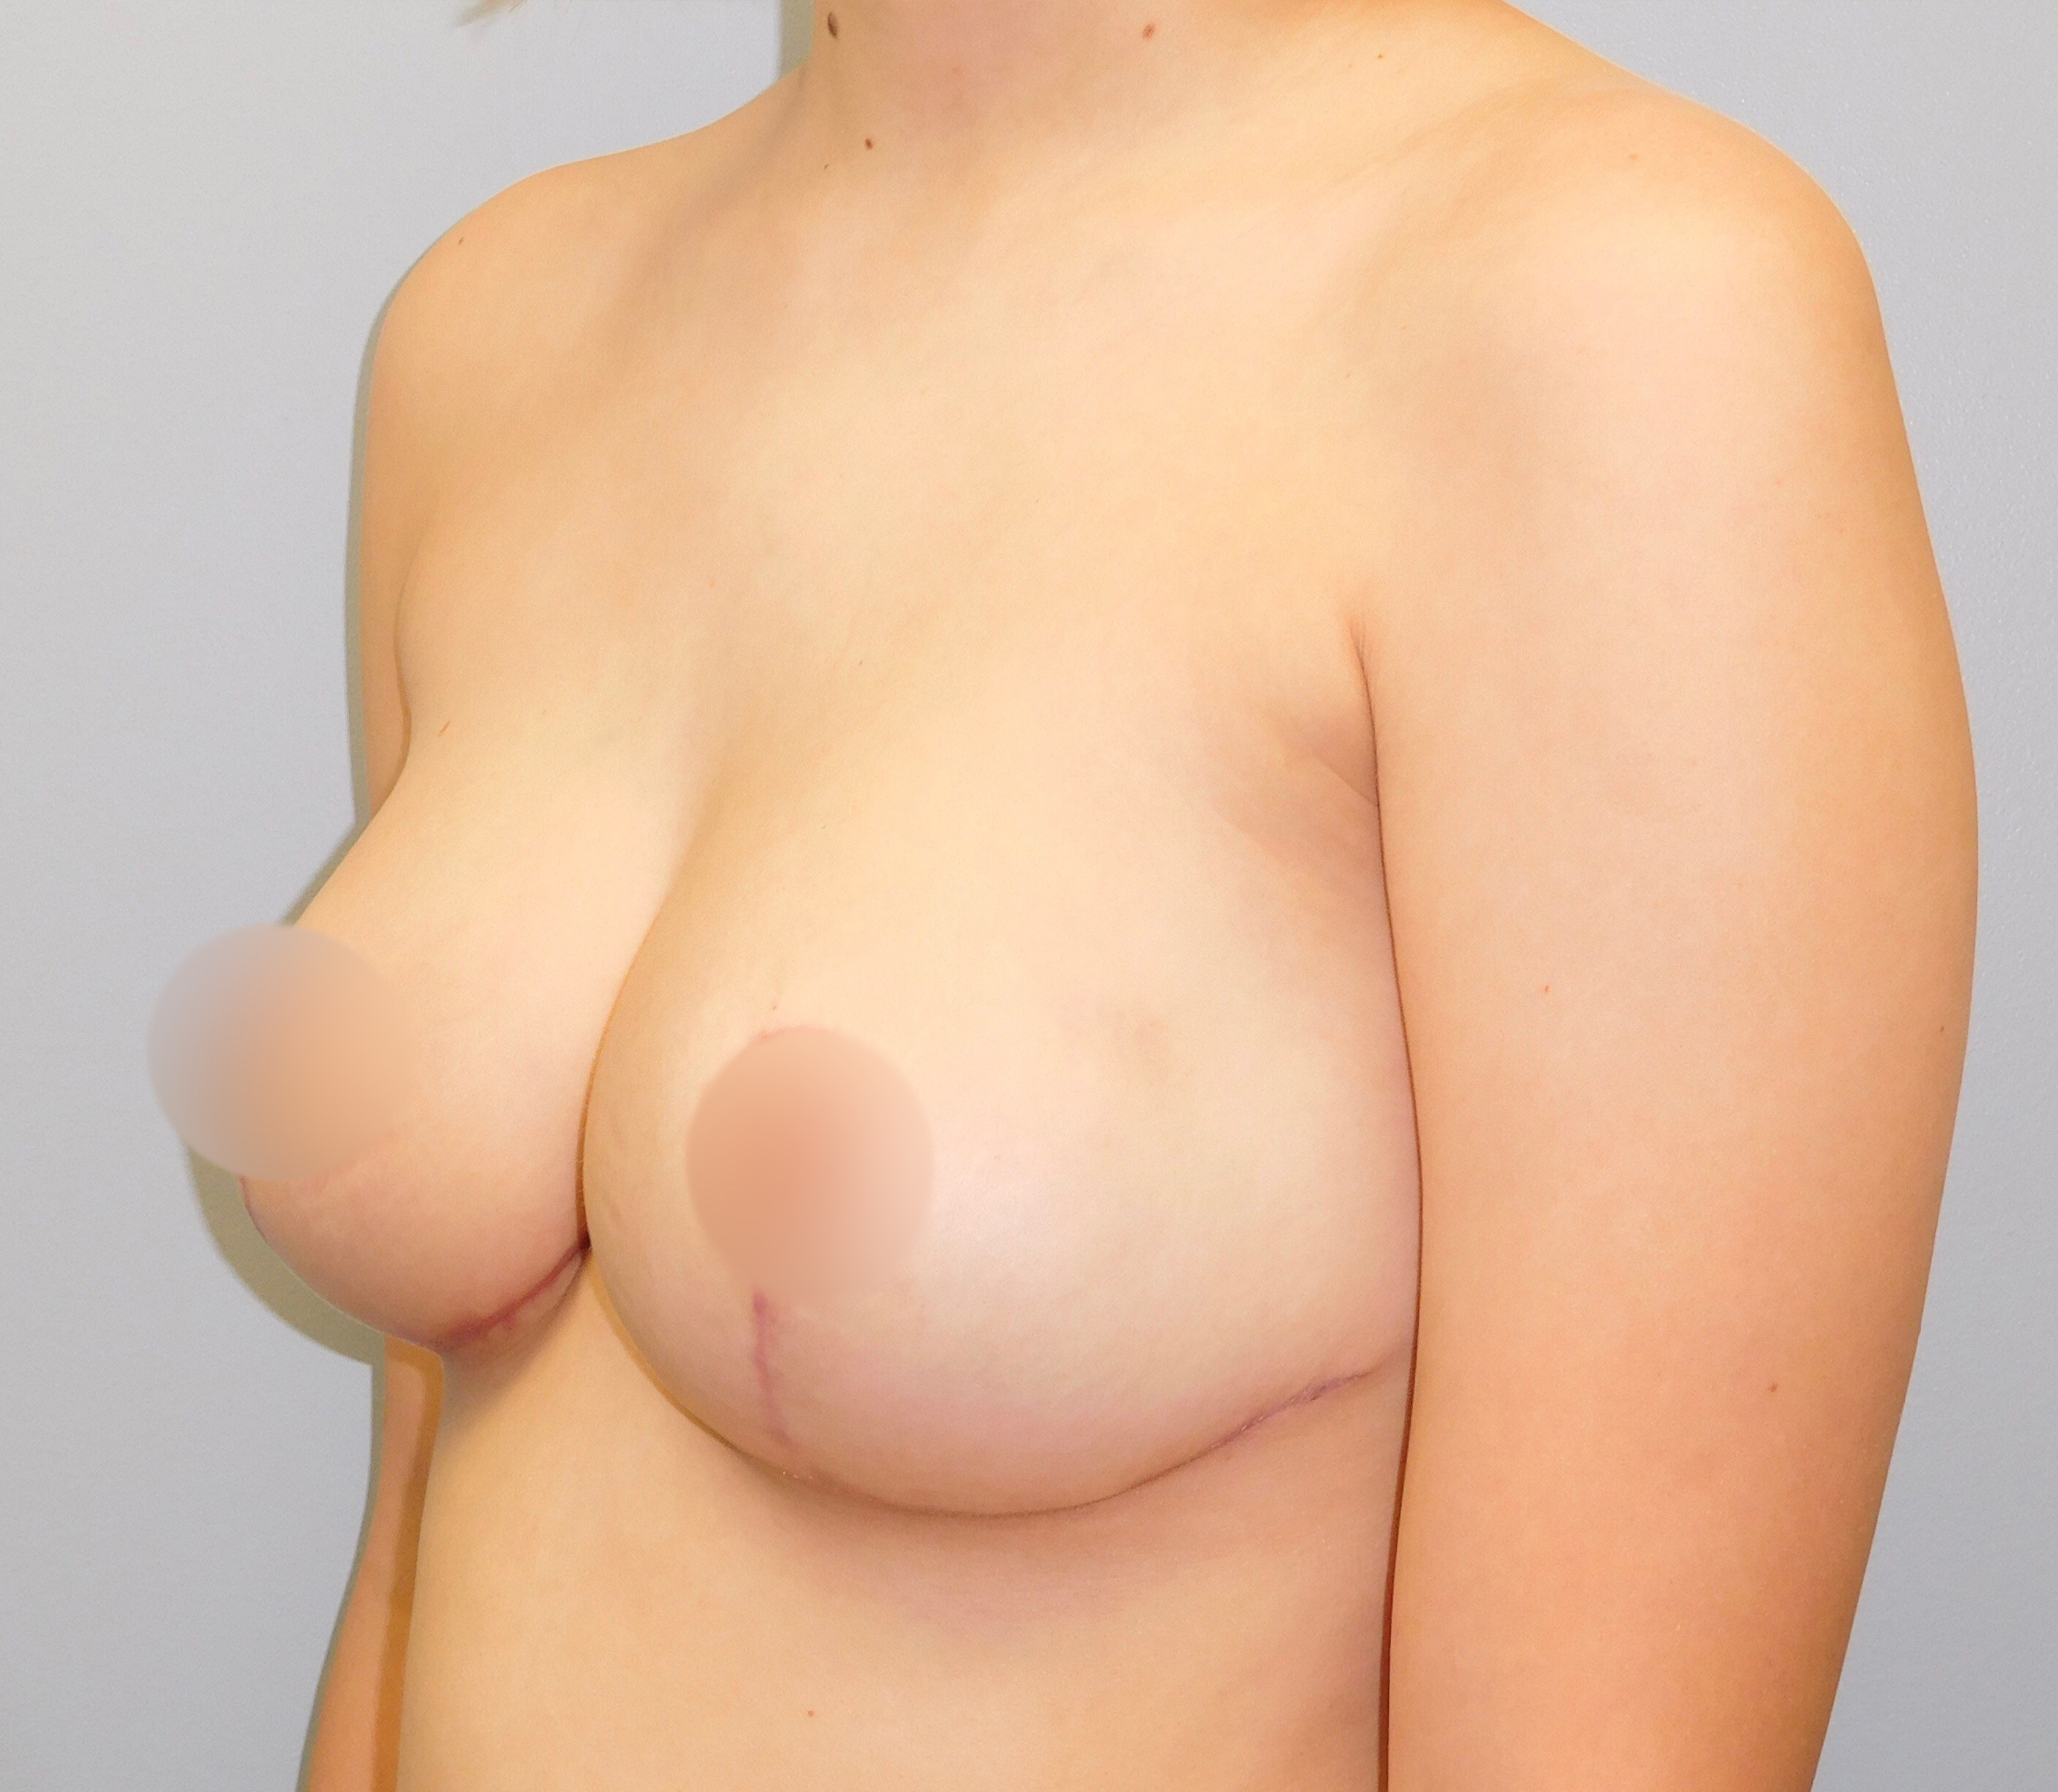 After photo of breast reduction performed at SOMC Plastic Surgery